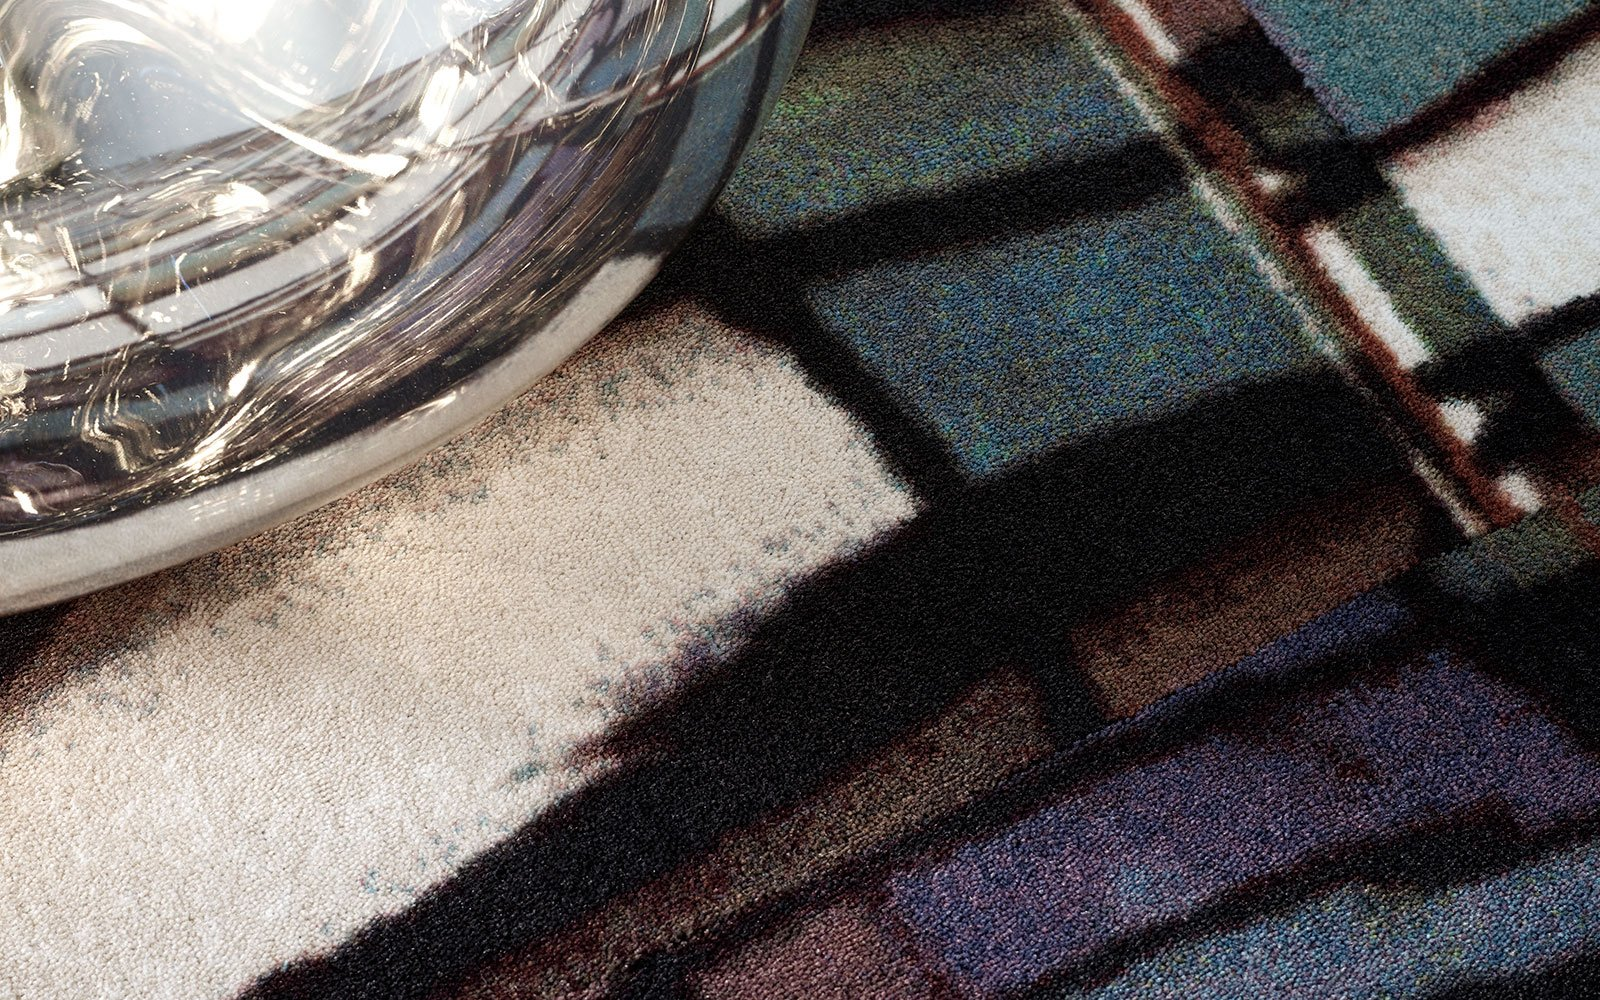 A close-up of wall-to-wall carpet from ege's Una concept